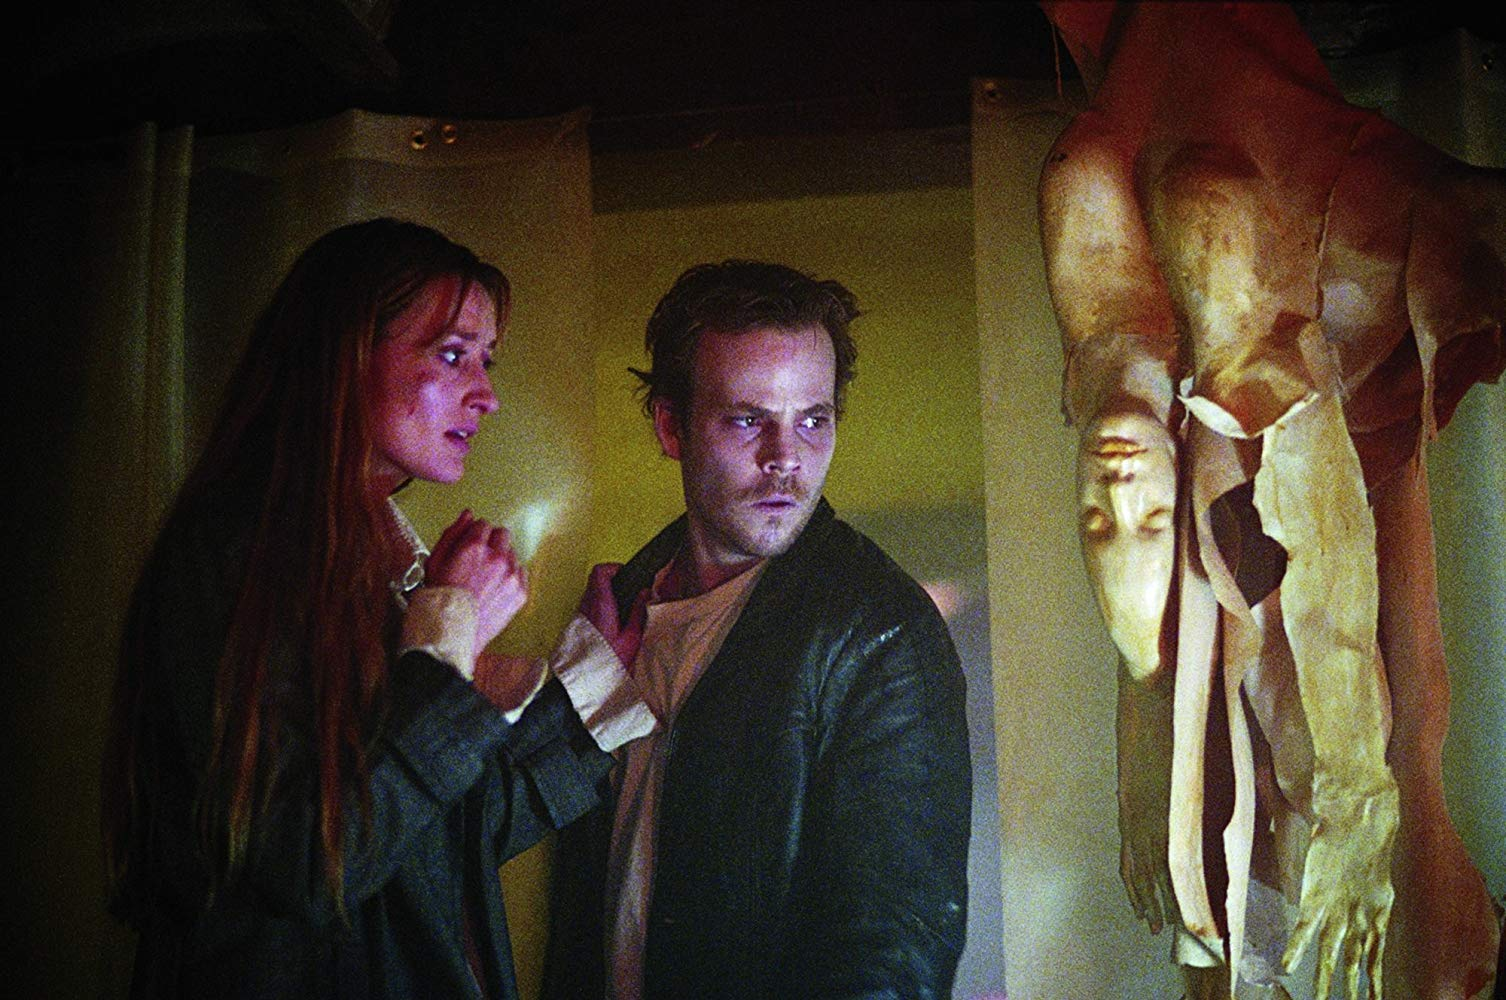 Natascha McElhone and Stephen Dorff investigate haunted websites in Feardotcom (2002)